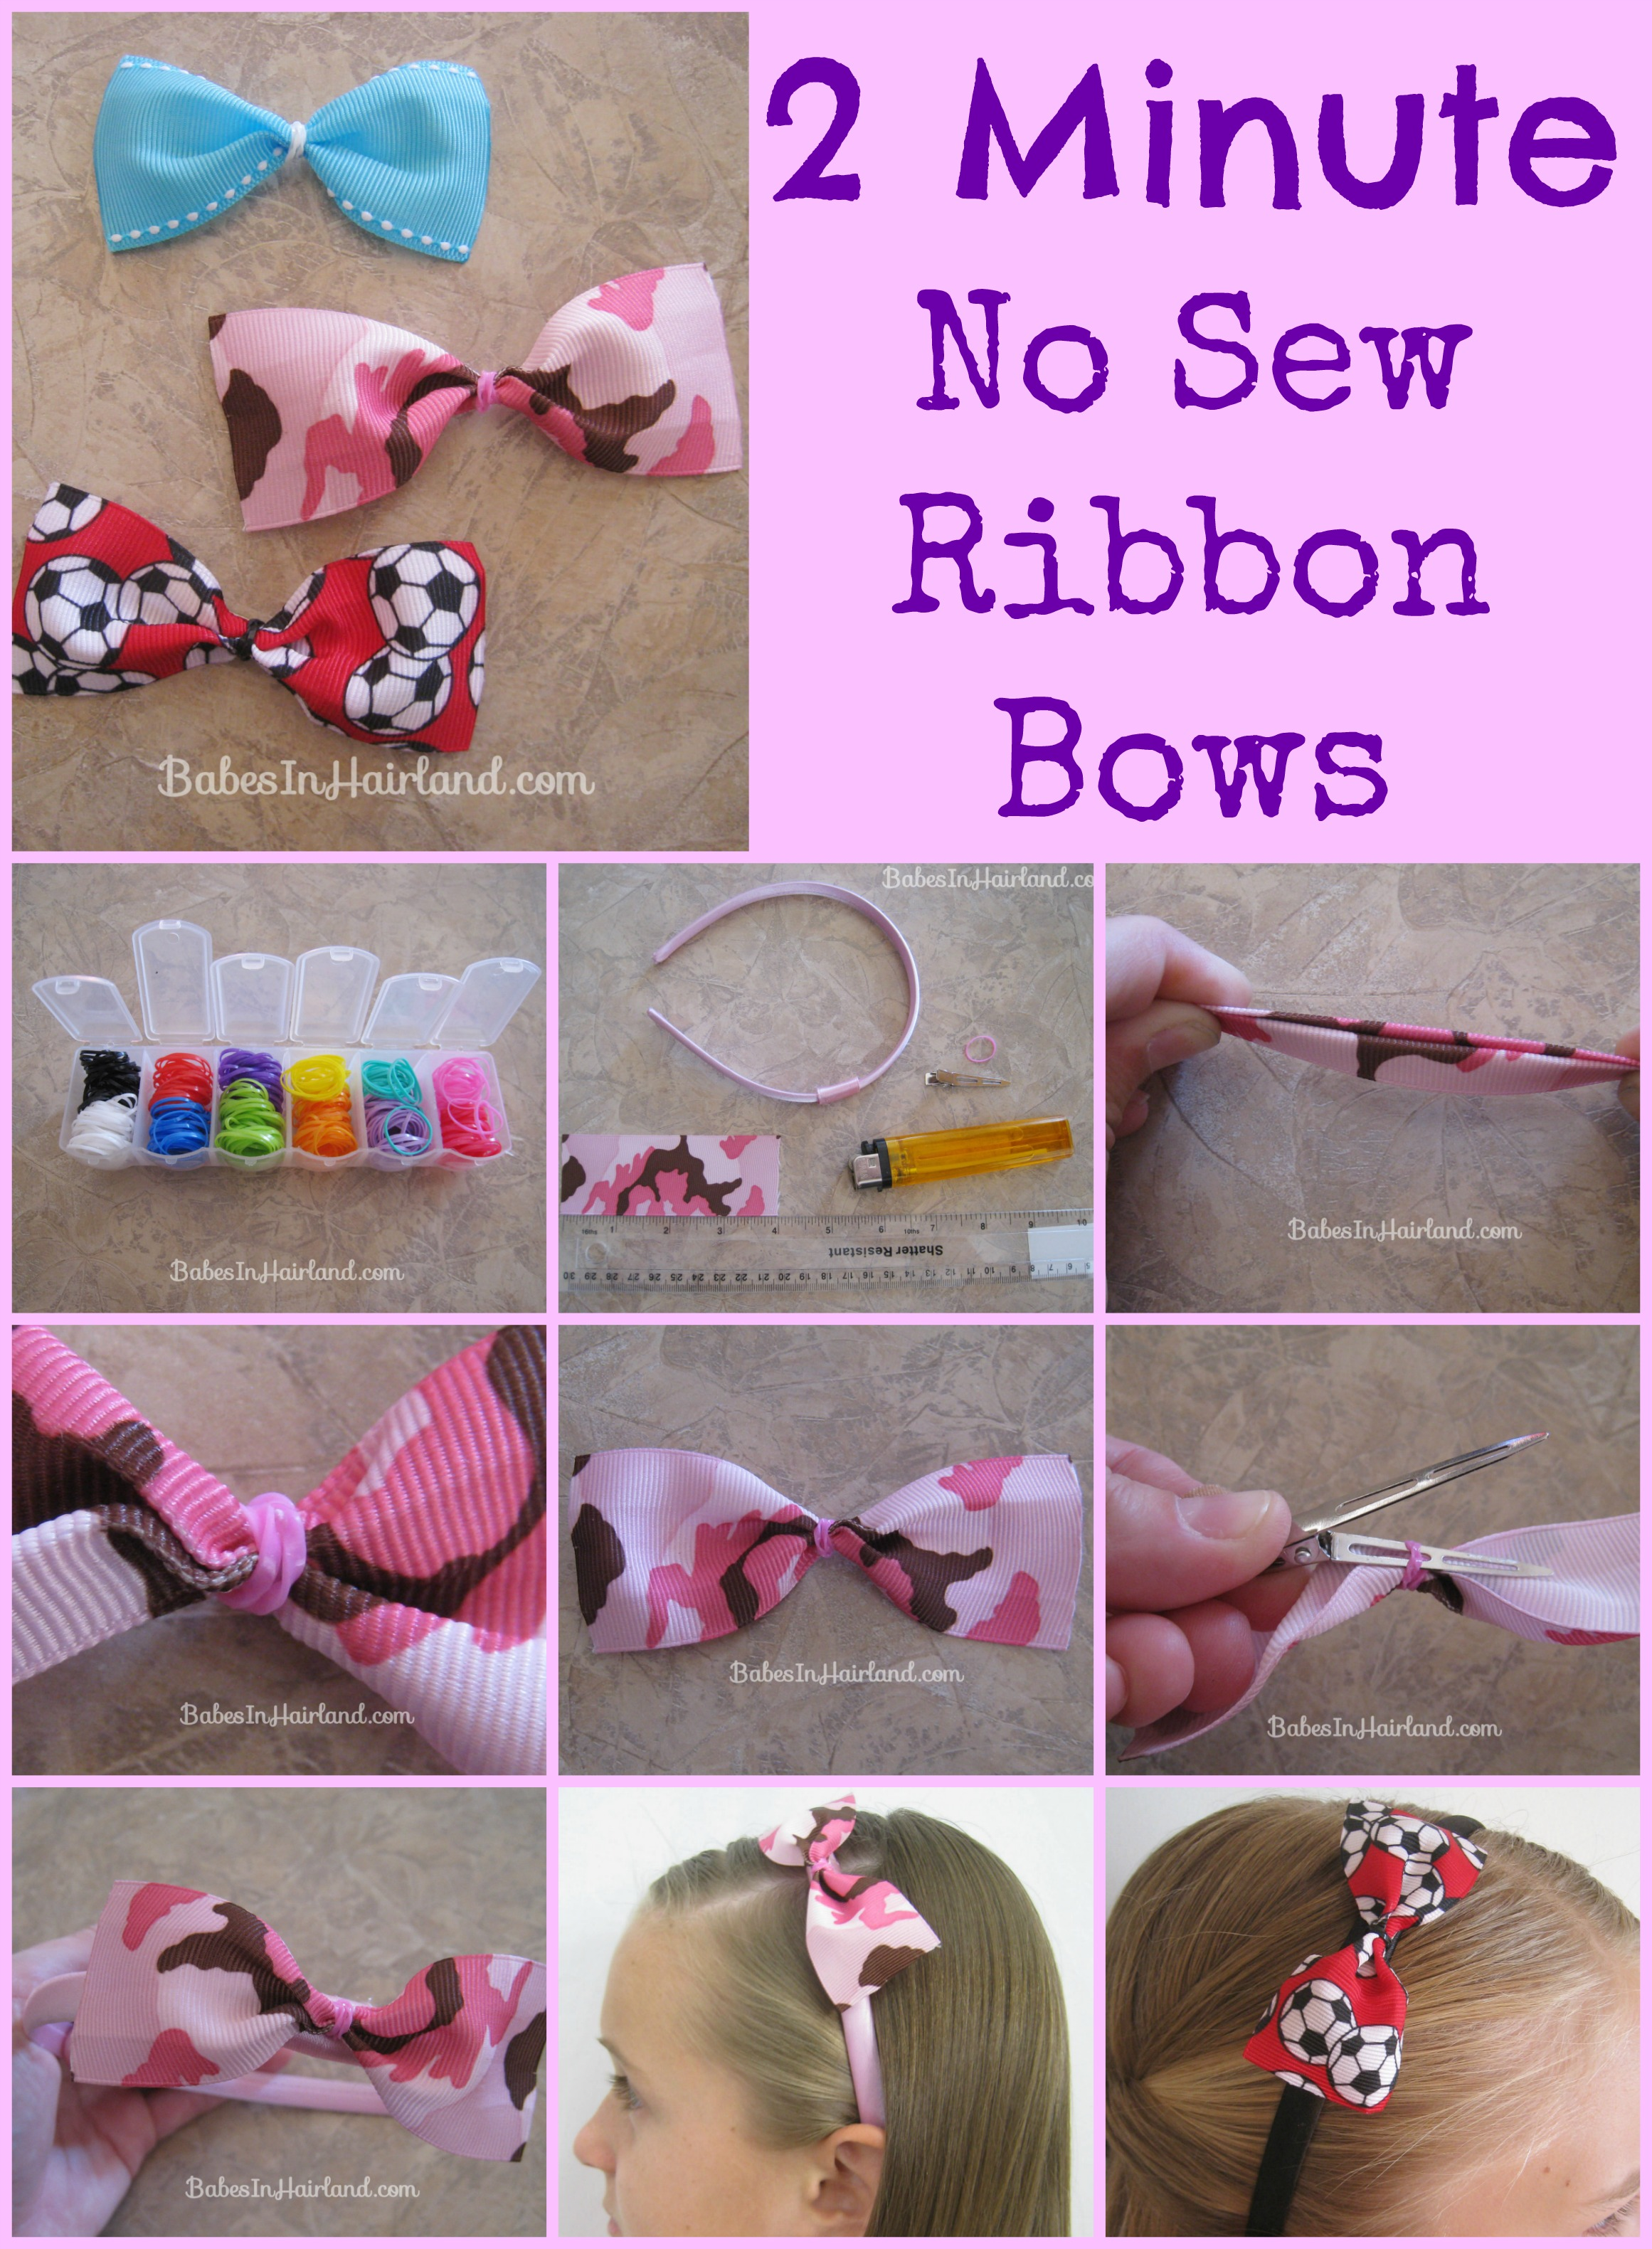 2 Minute No Sew Ribbon Bows Babes In Hairland